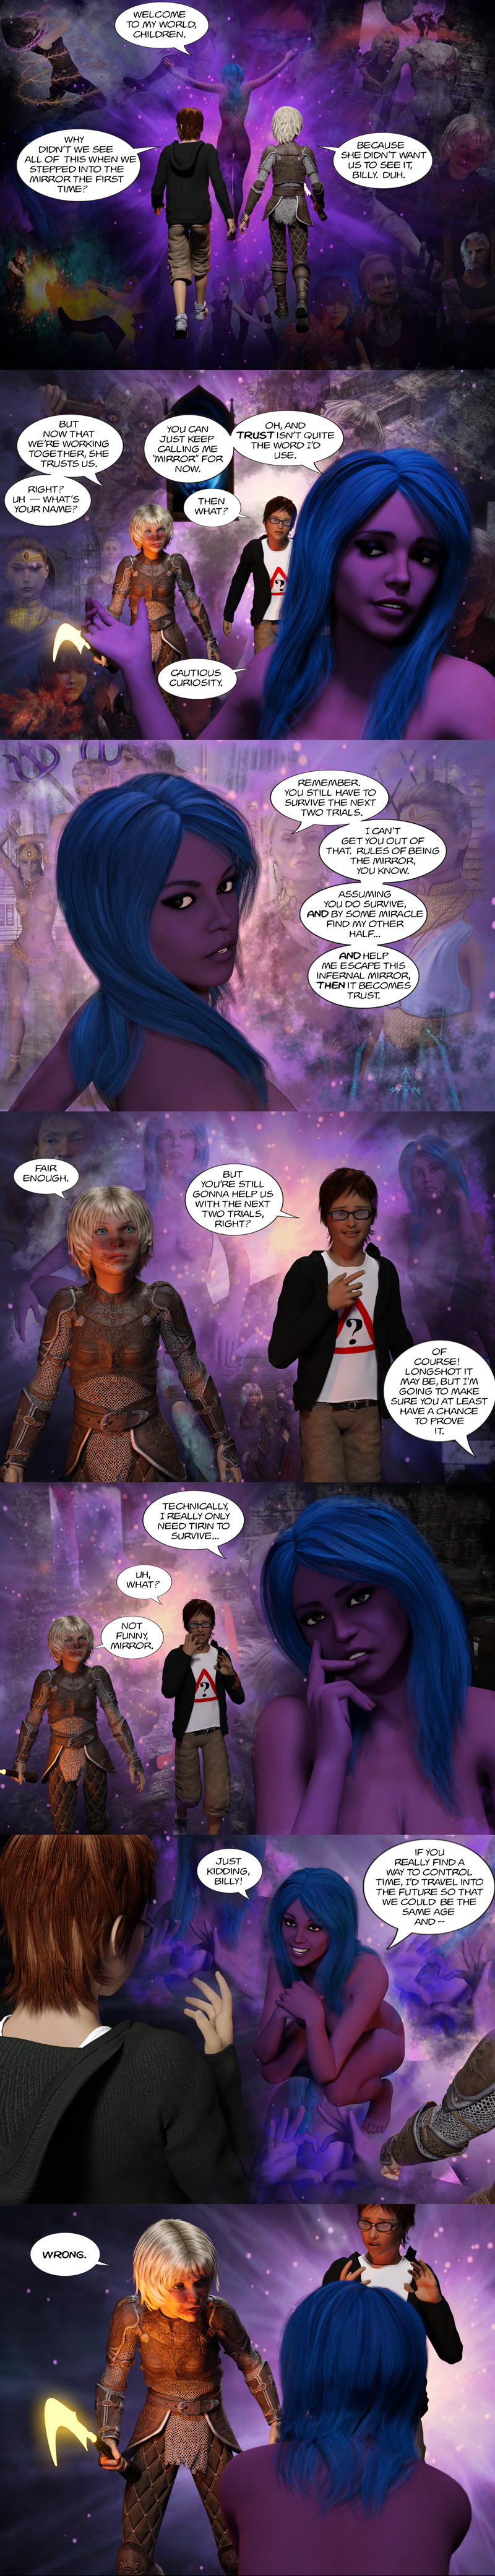 Chapter 12, page 40